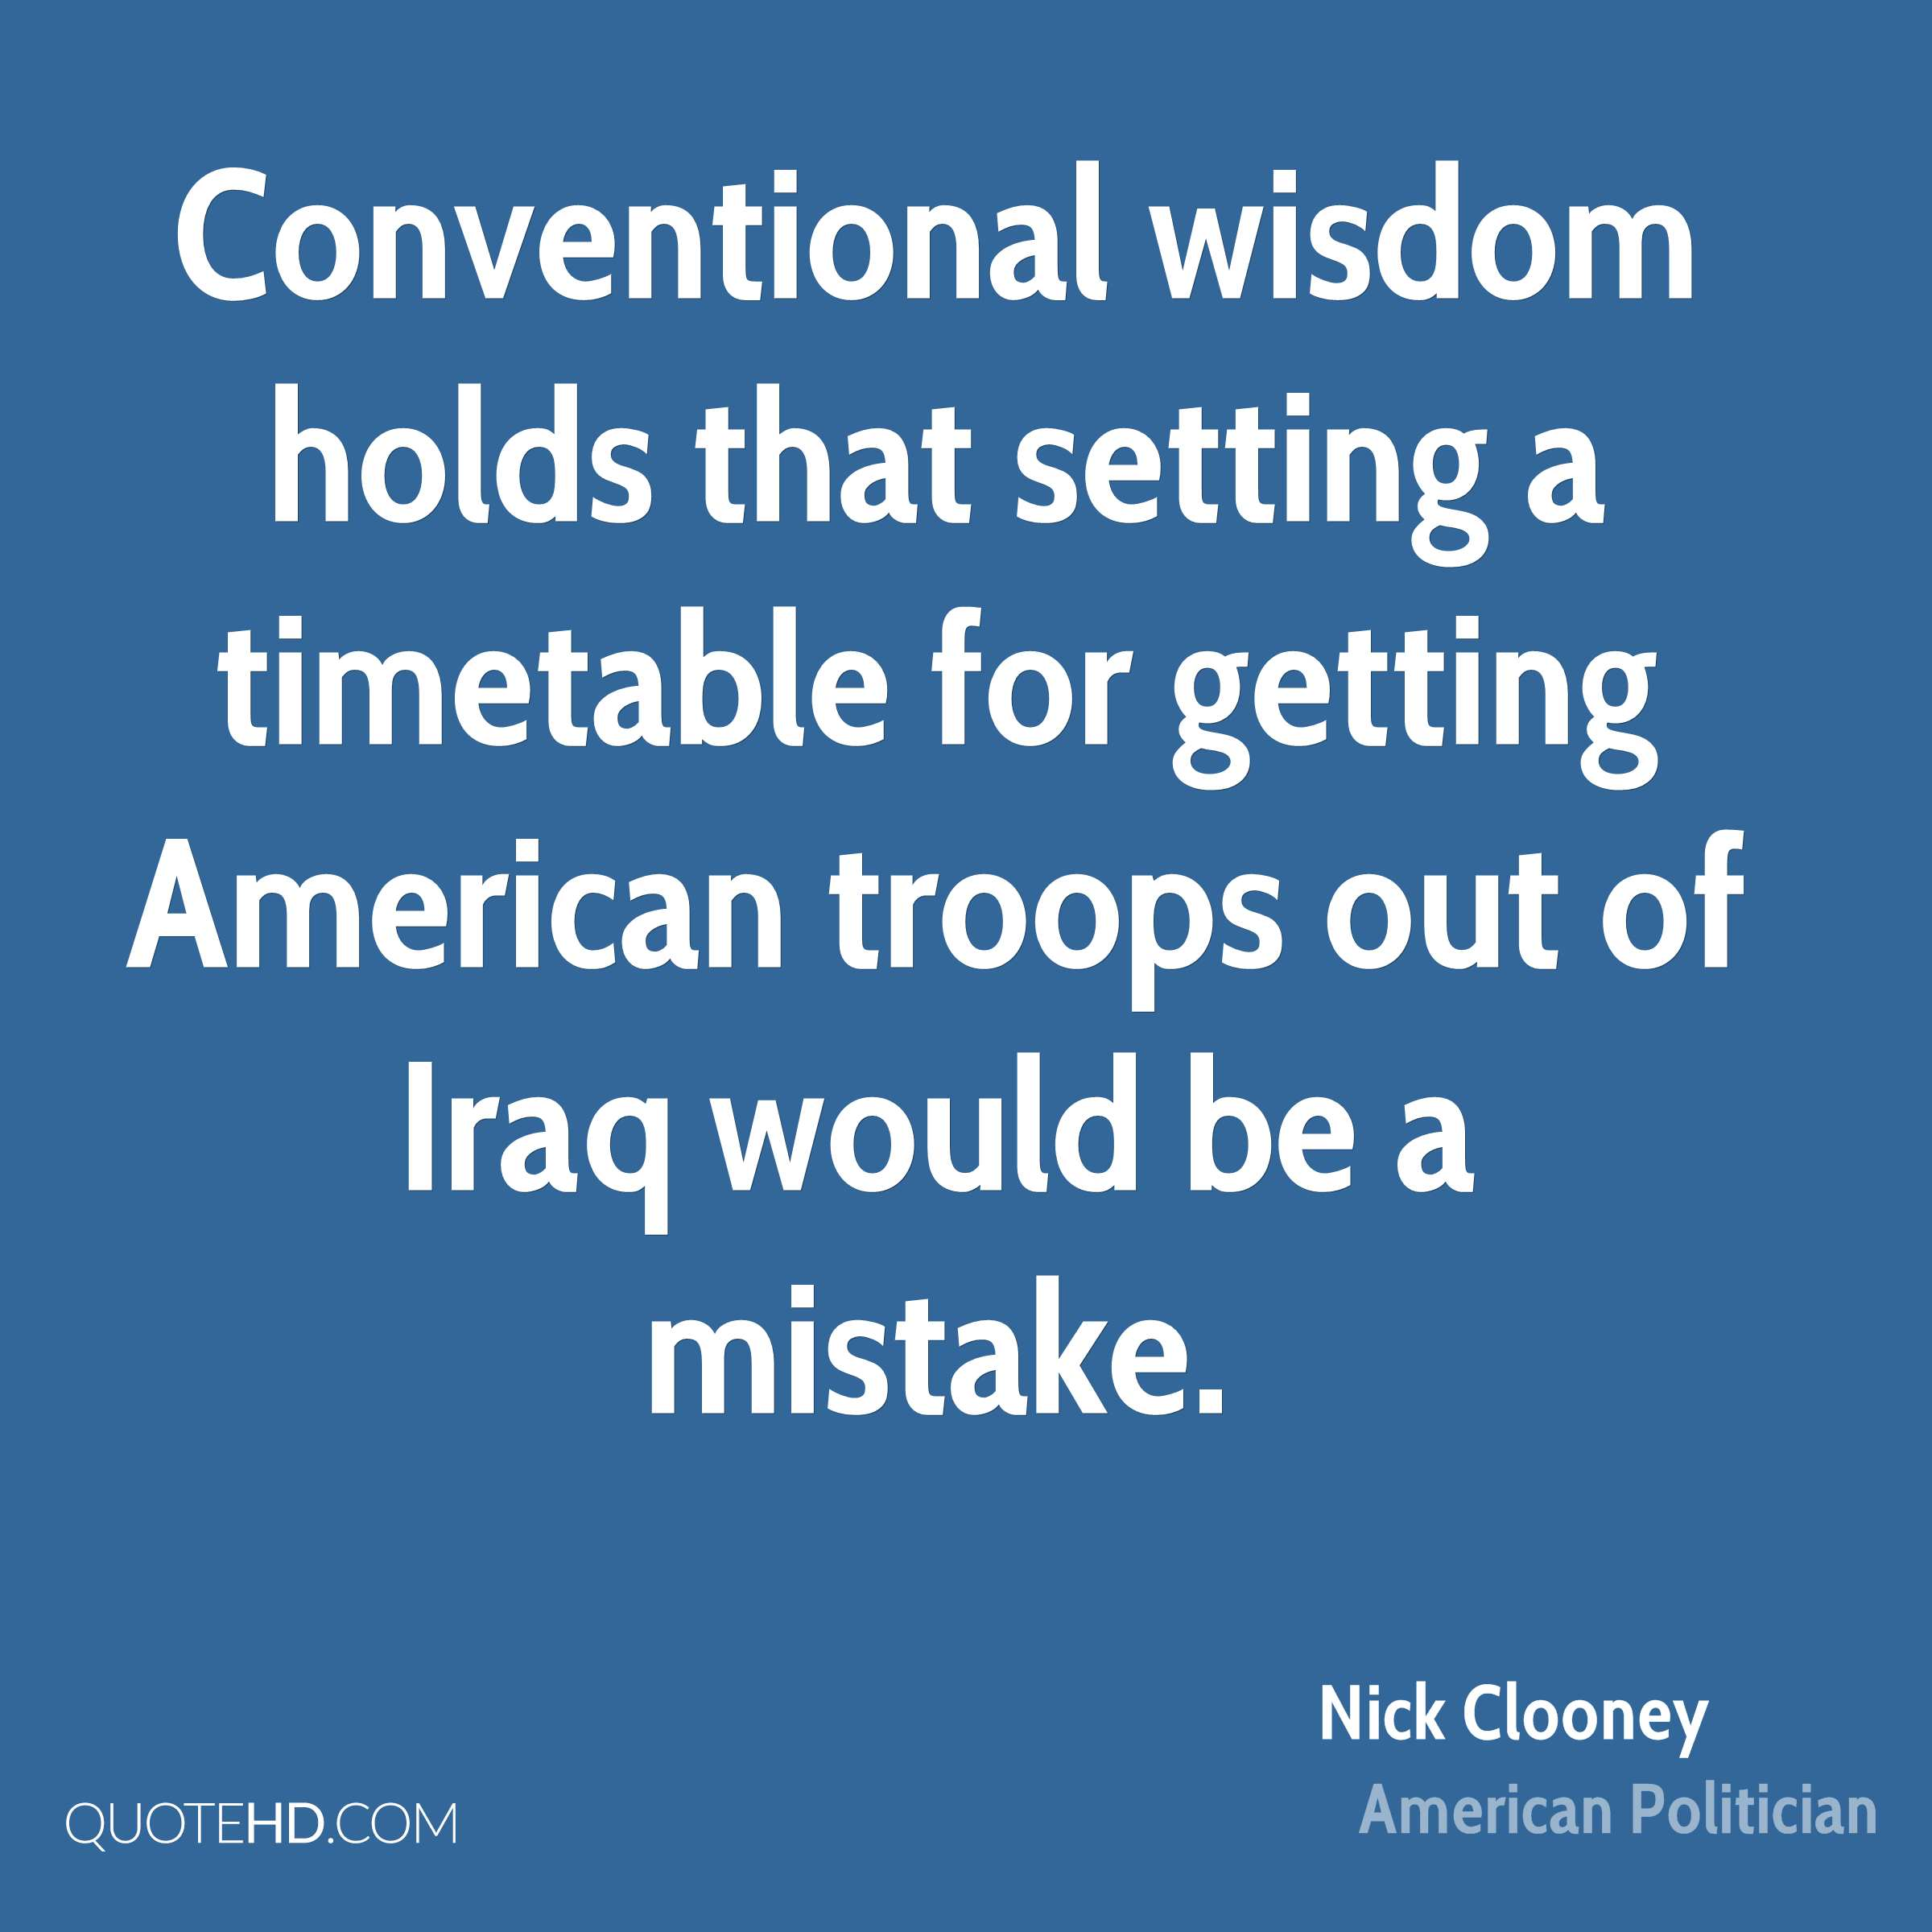 Conventional wisdom holds that setting a timetable for getting American troops out of Iraq would be a mistake.